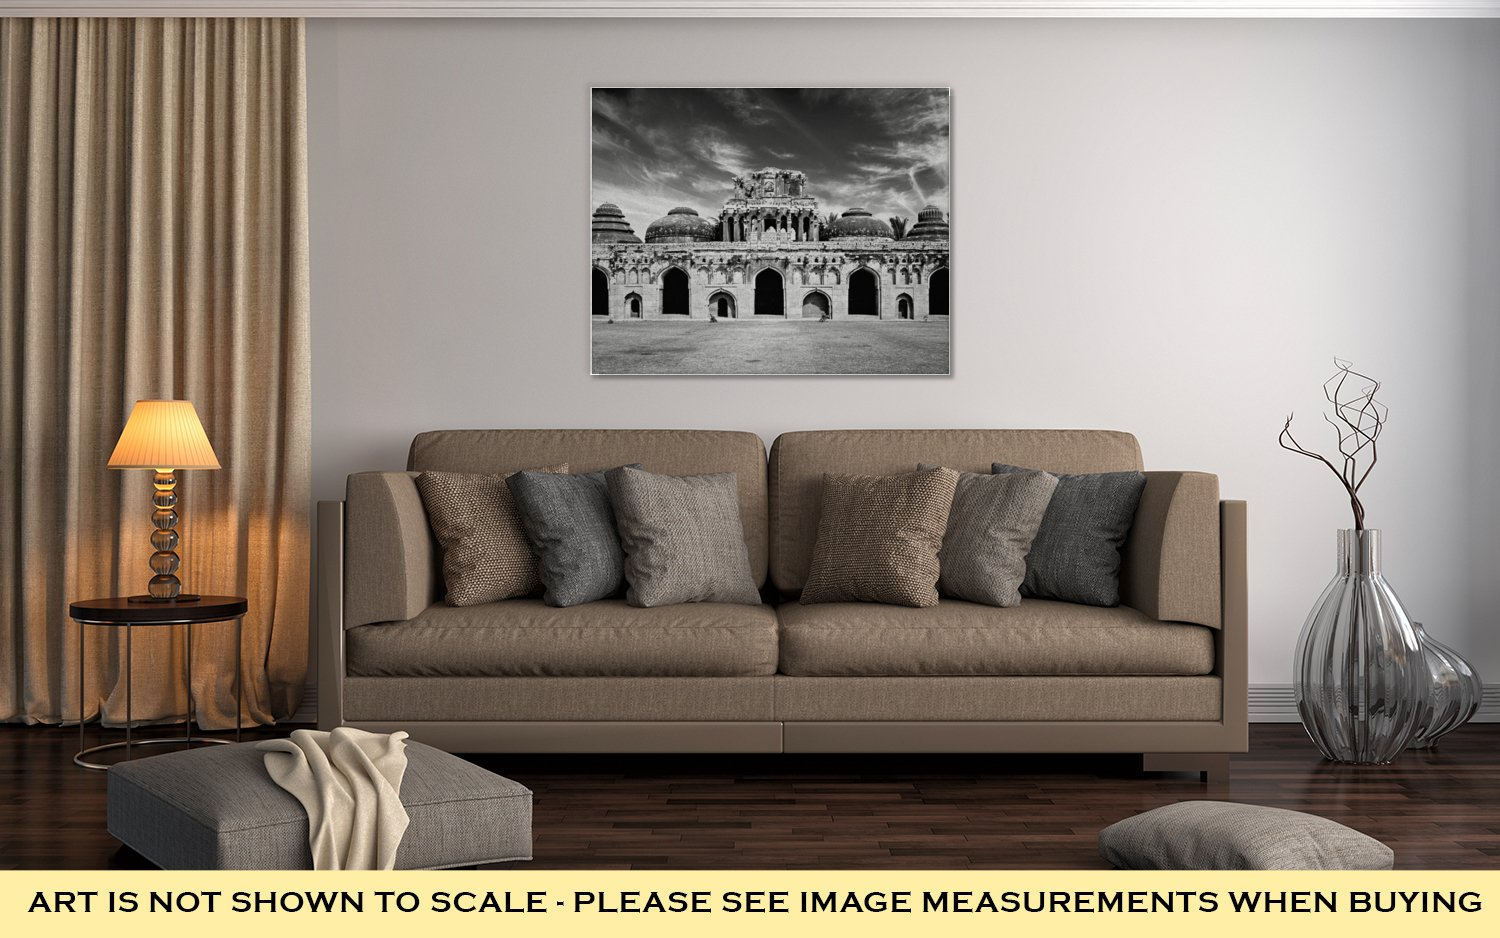 Ashley Canvas Travel India Karnataka Tourism Vintage Retro Effect Filtered Hipster Style, Wall Art Home Decor, Ready to Hang, Black/White, 16x20, AG5260663